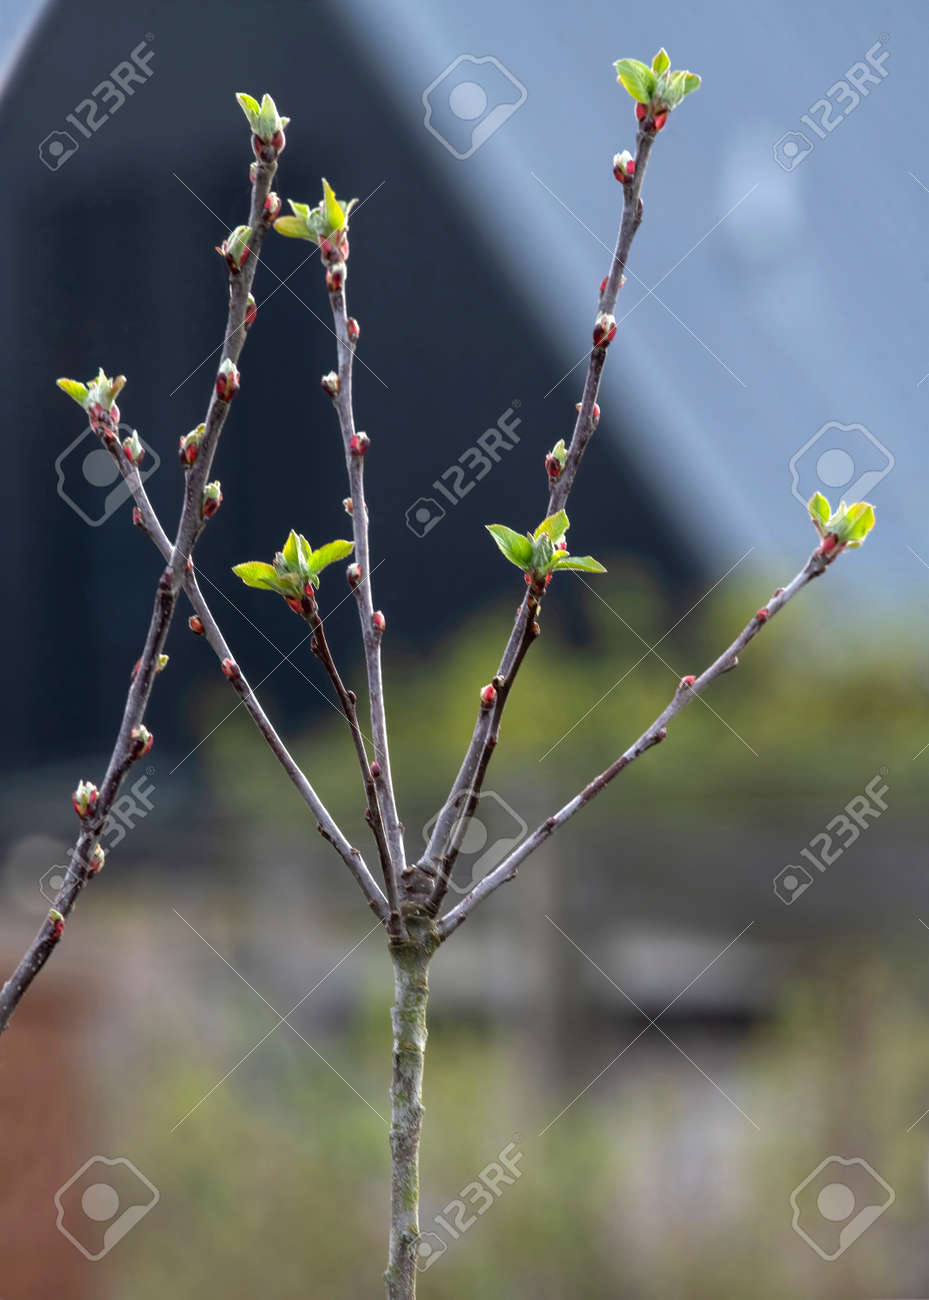 Selective focus on a close up of apple tree coming into budding spring time with new growth blurrled background for copy space - 166924913